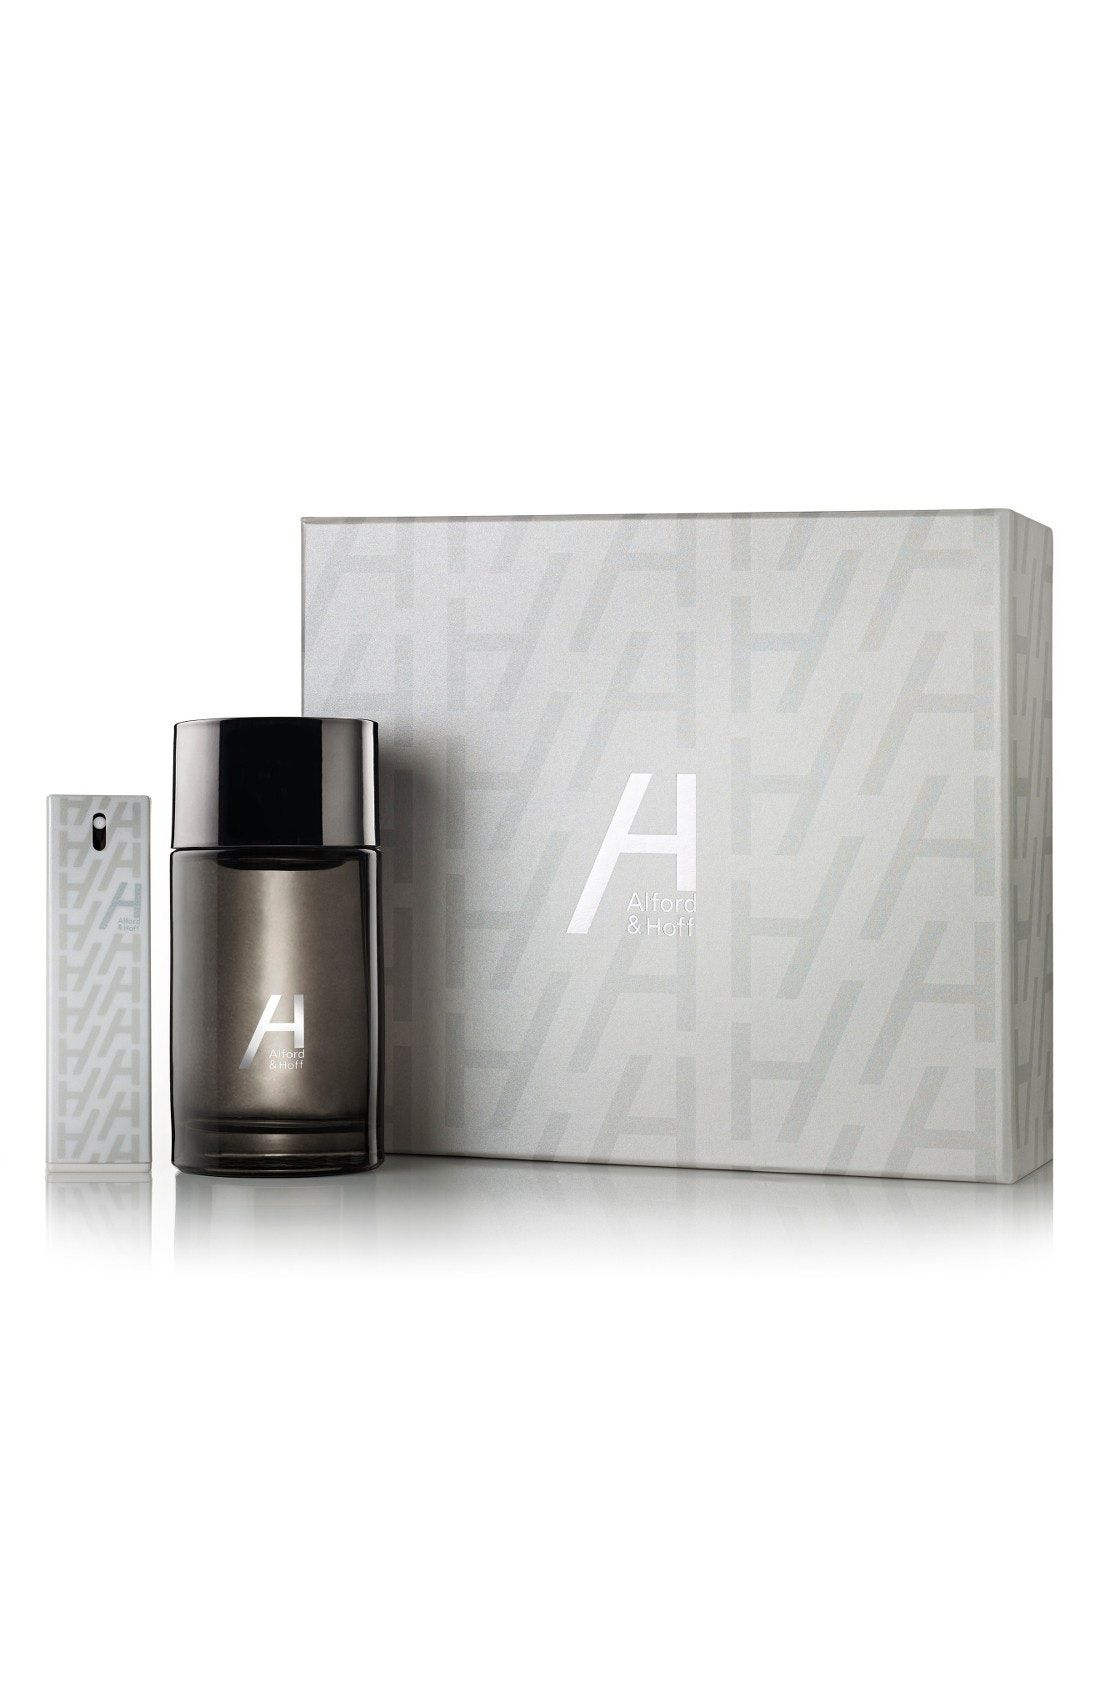 Alford Hoff No. 3 Gift Set (Limited Edition) (132 Value)